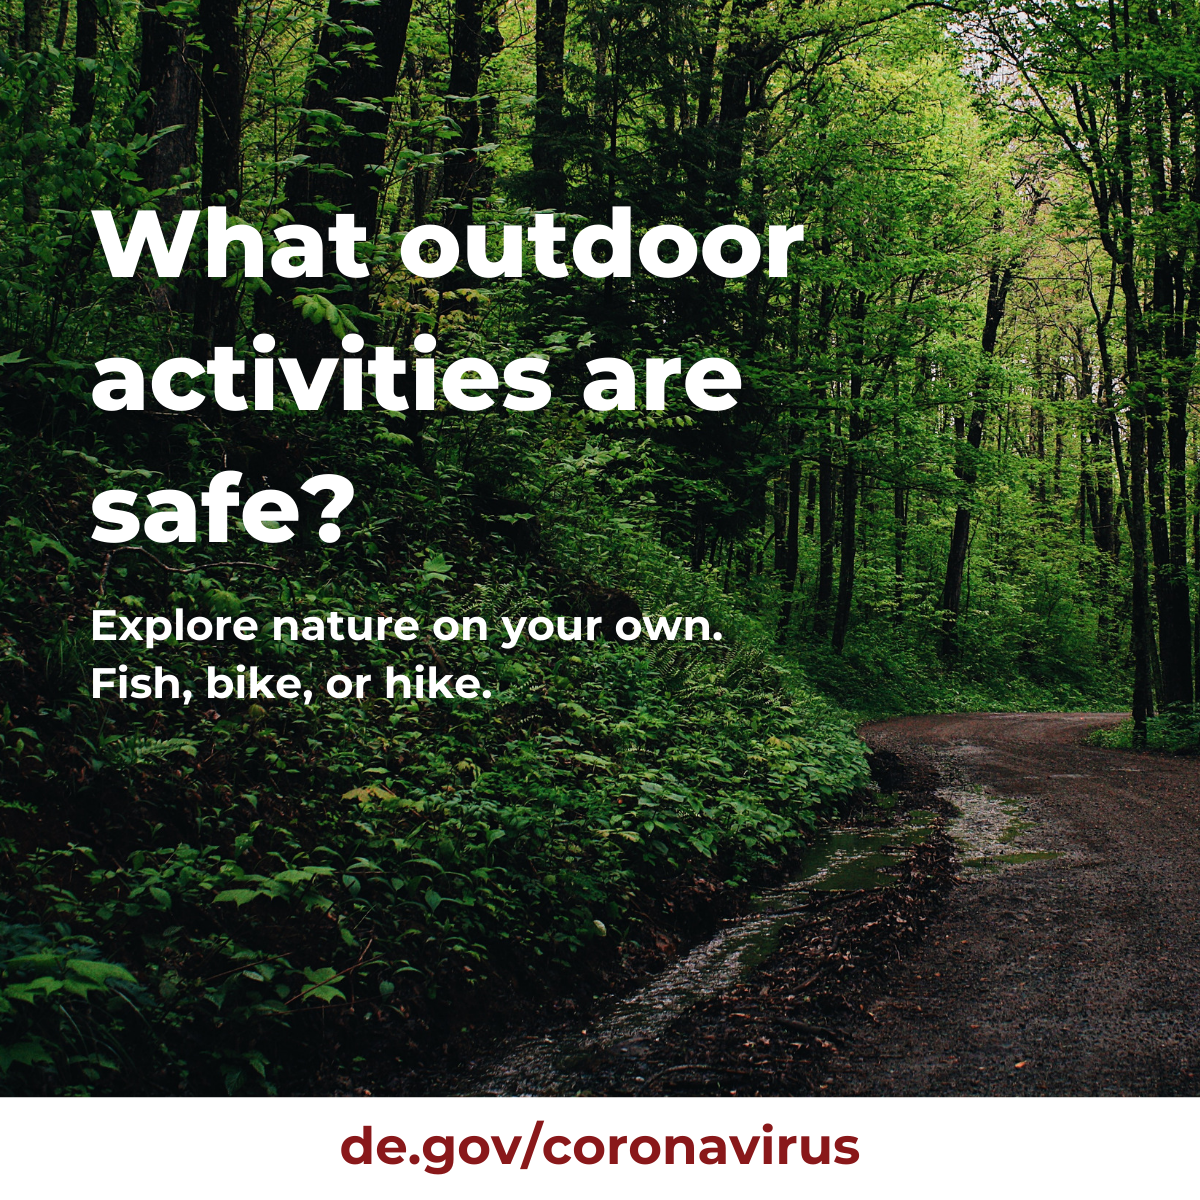 What outdoor activities are safe?